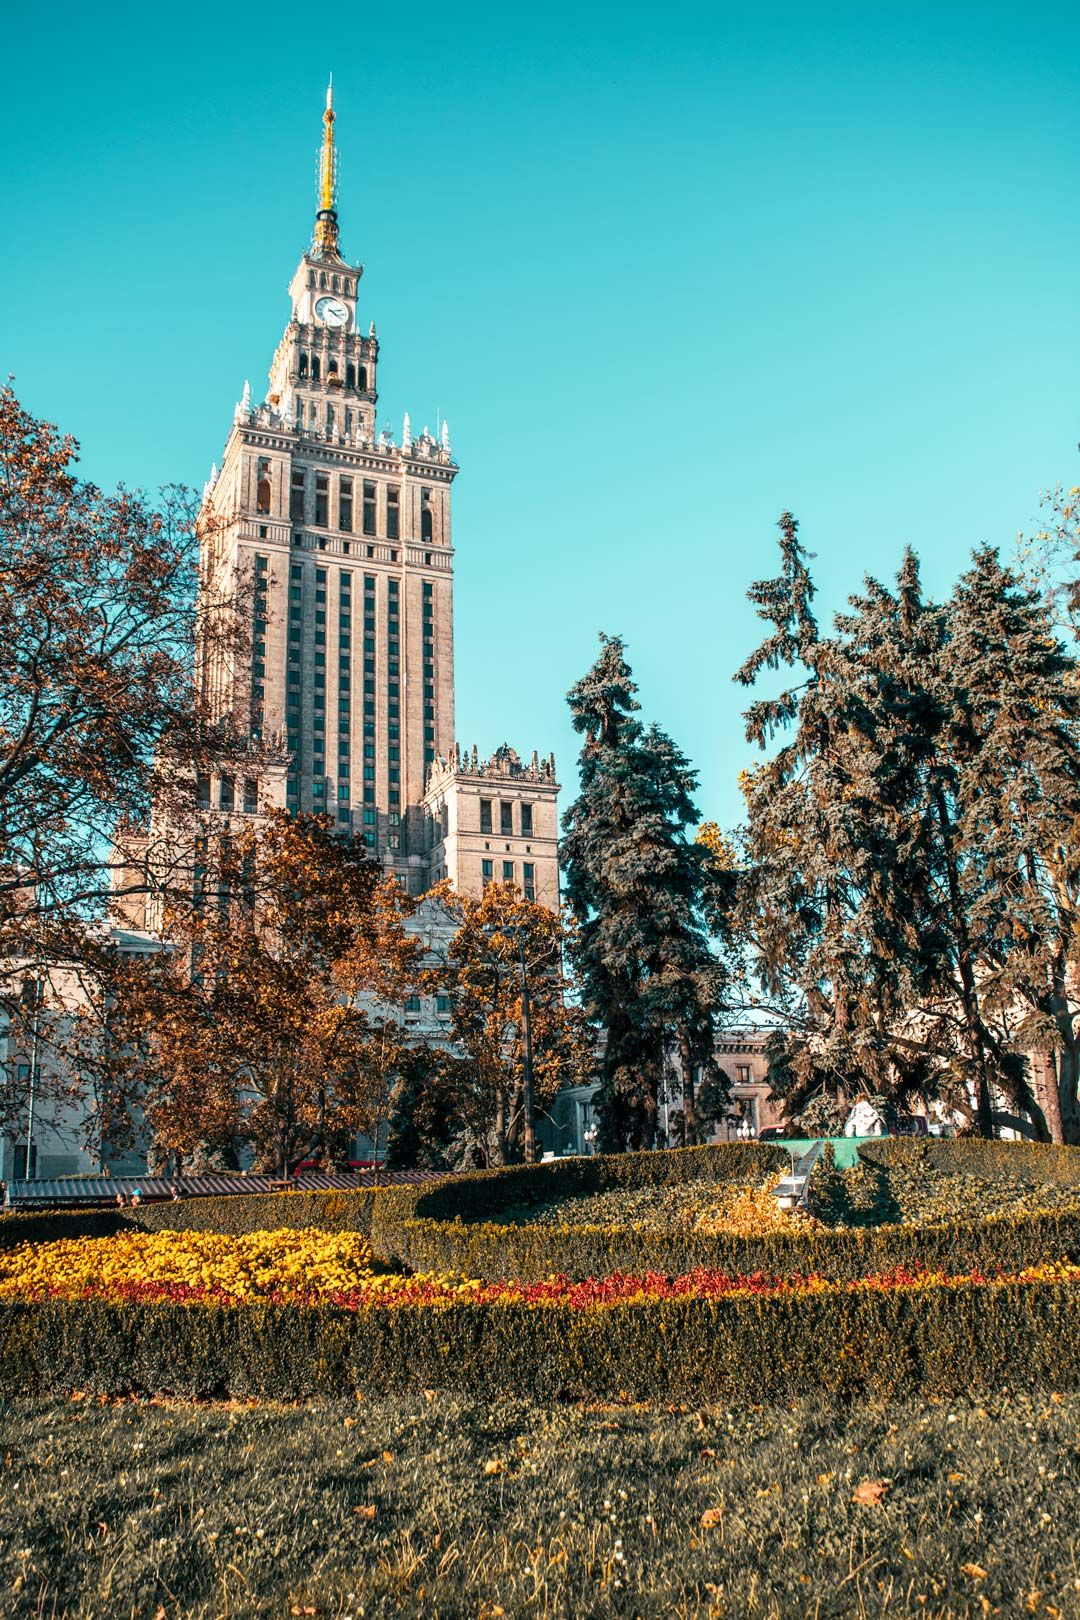 Palace-of-culture-and-sience-Warsaw-Poland-travelshare.gr